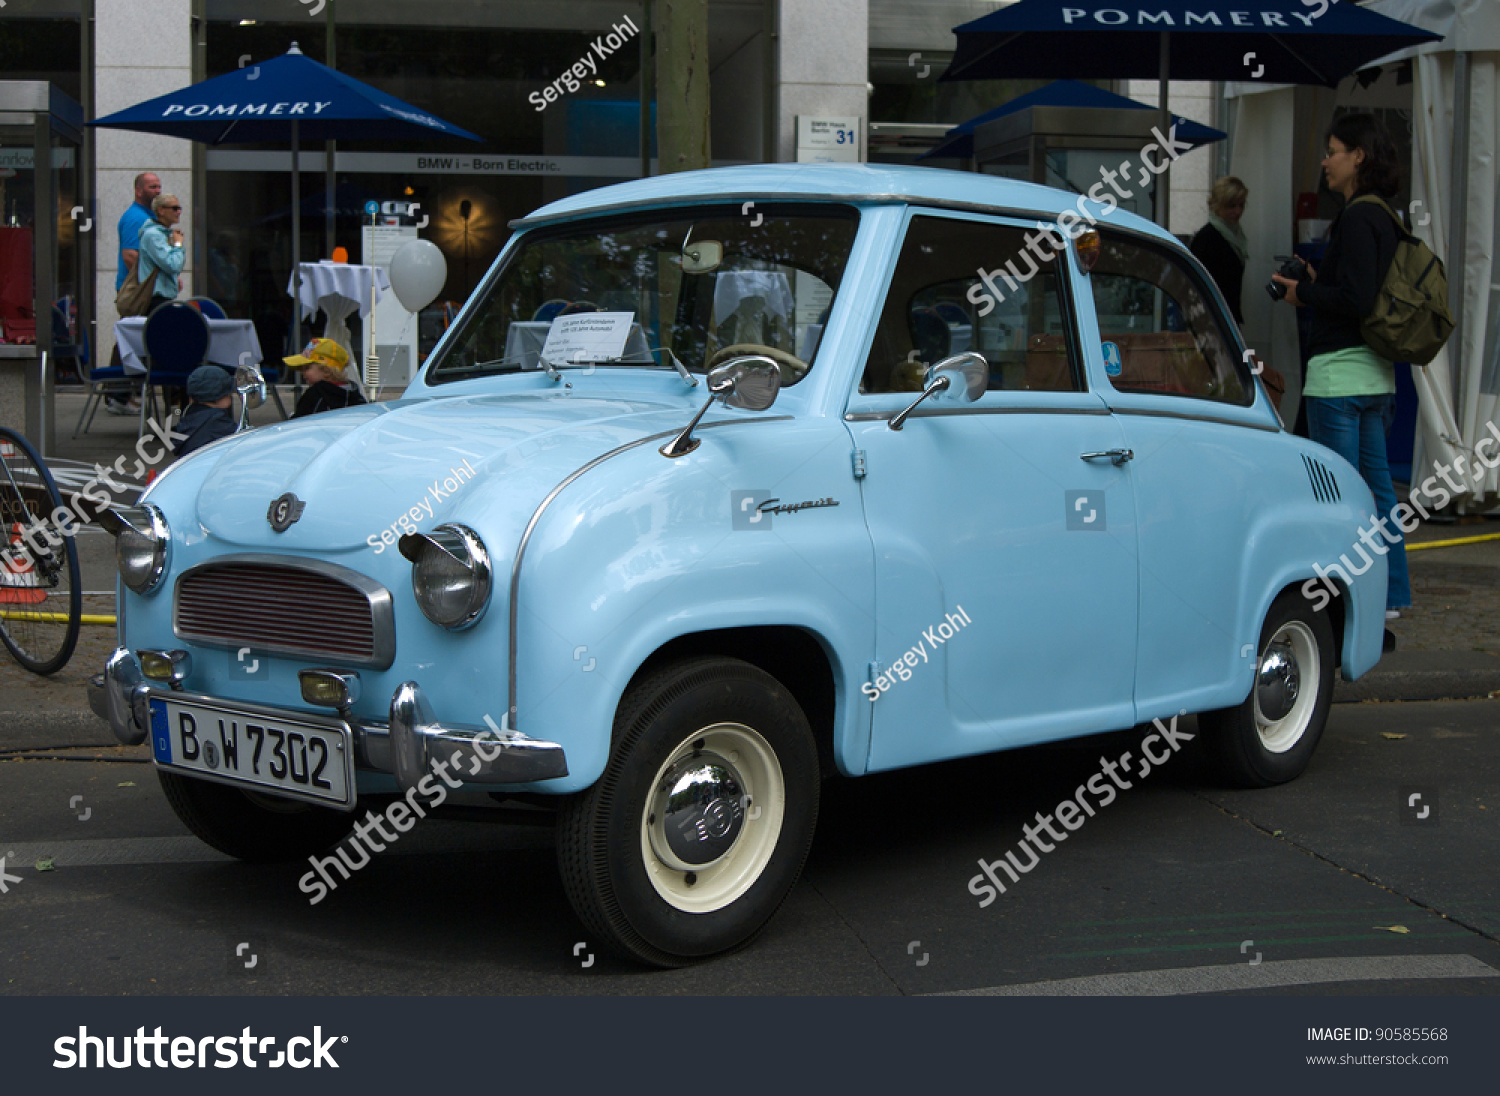 berlin may 28 car goggomobil t250 the exhibition 125 car history 125 years of history. Black Bedroom Furniture Sets. Home Design Ideas